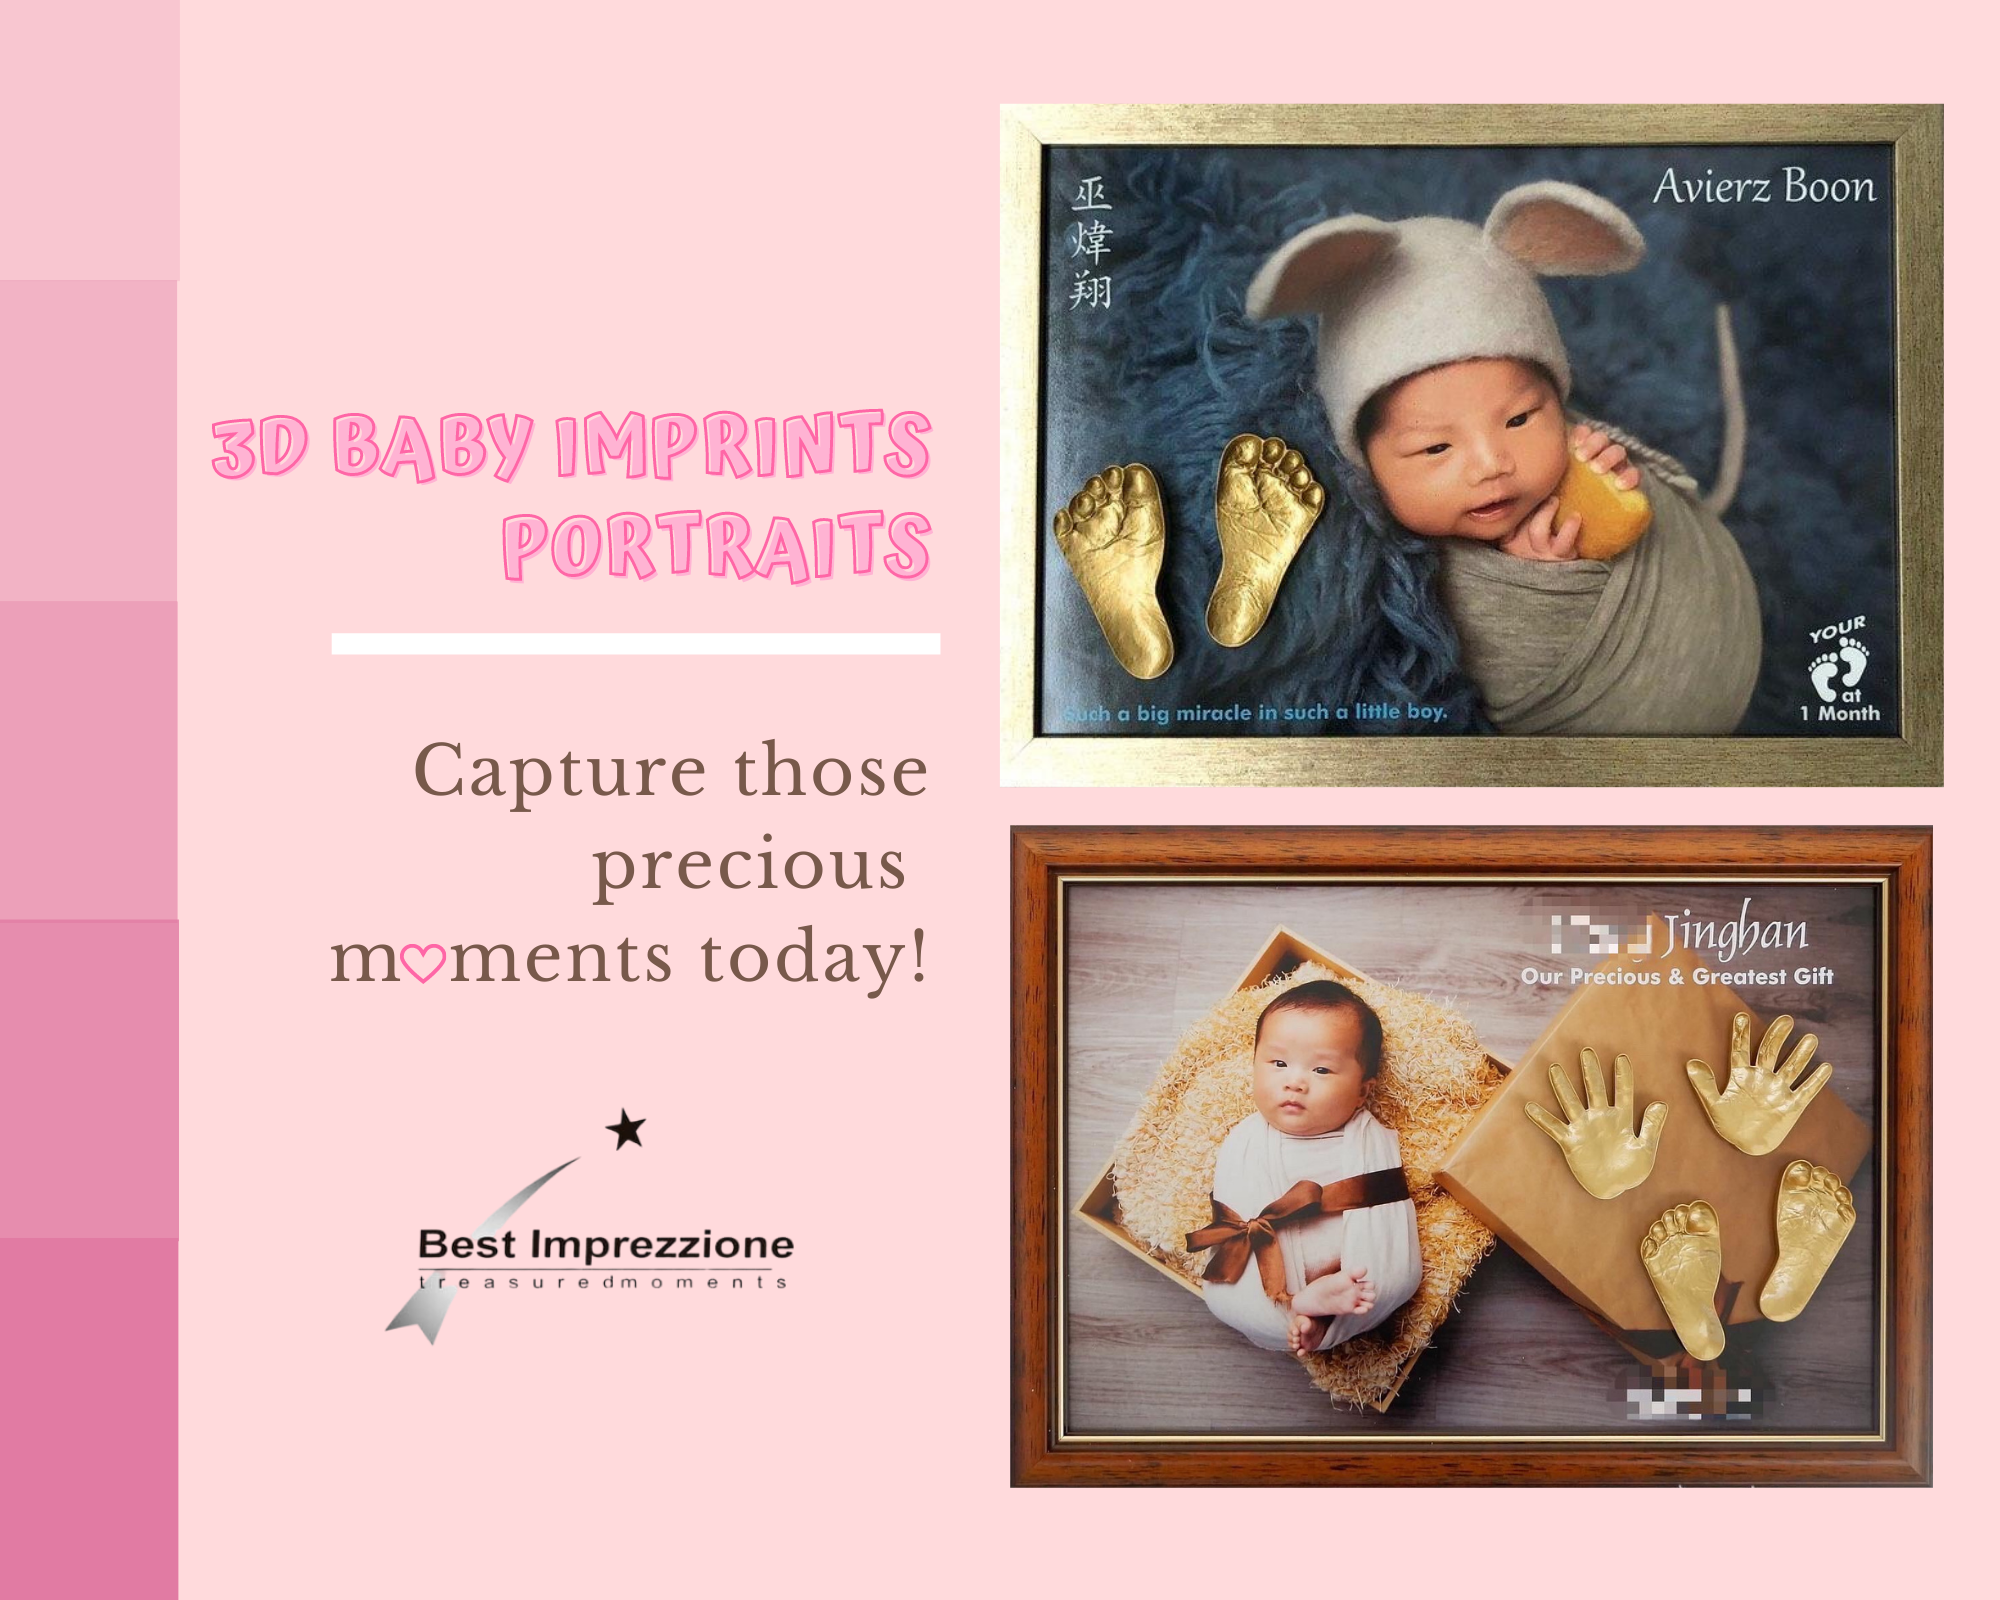 Customized 3D Baby Imprints Portraits